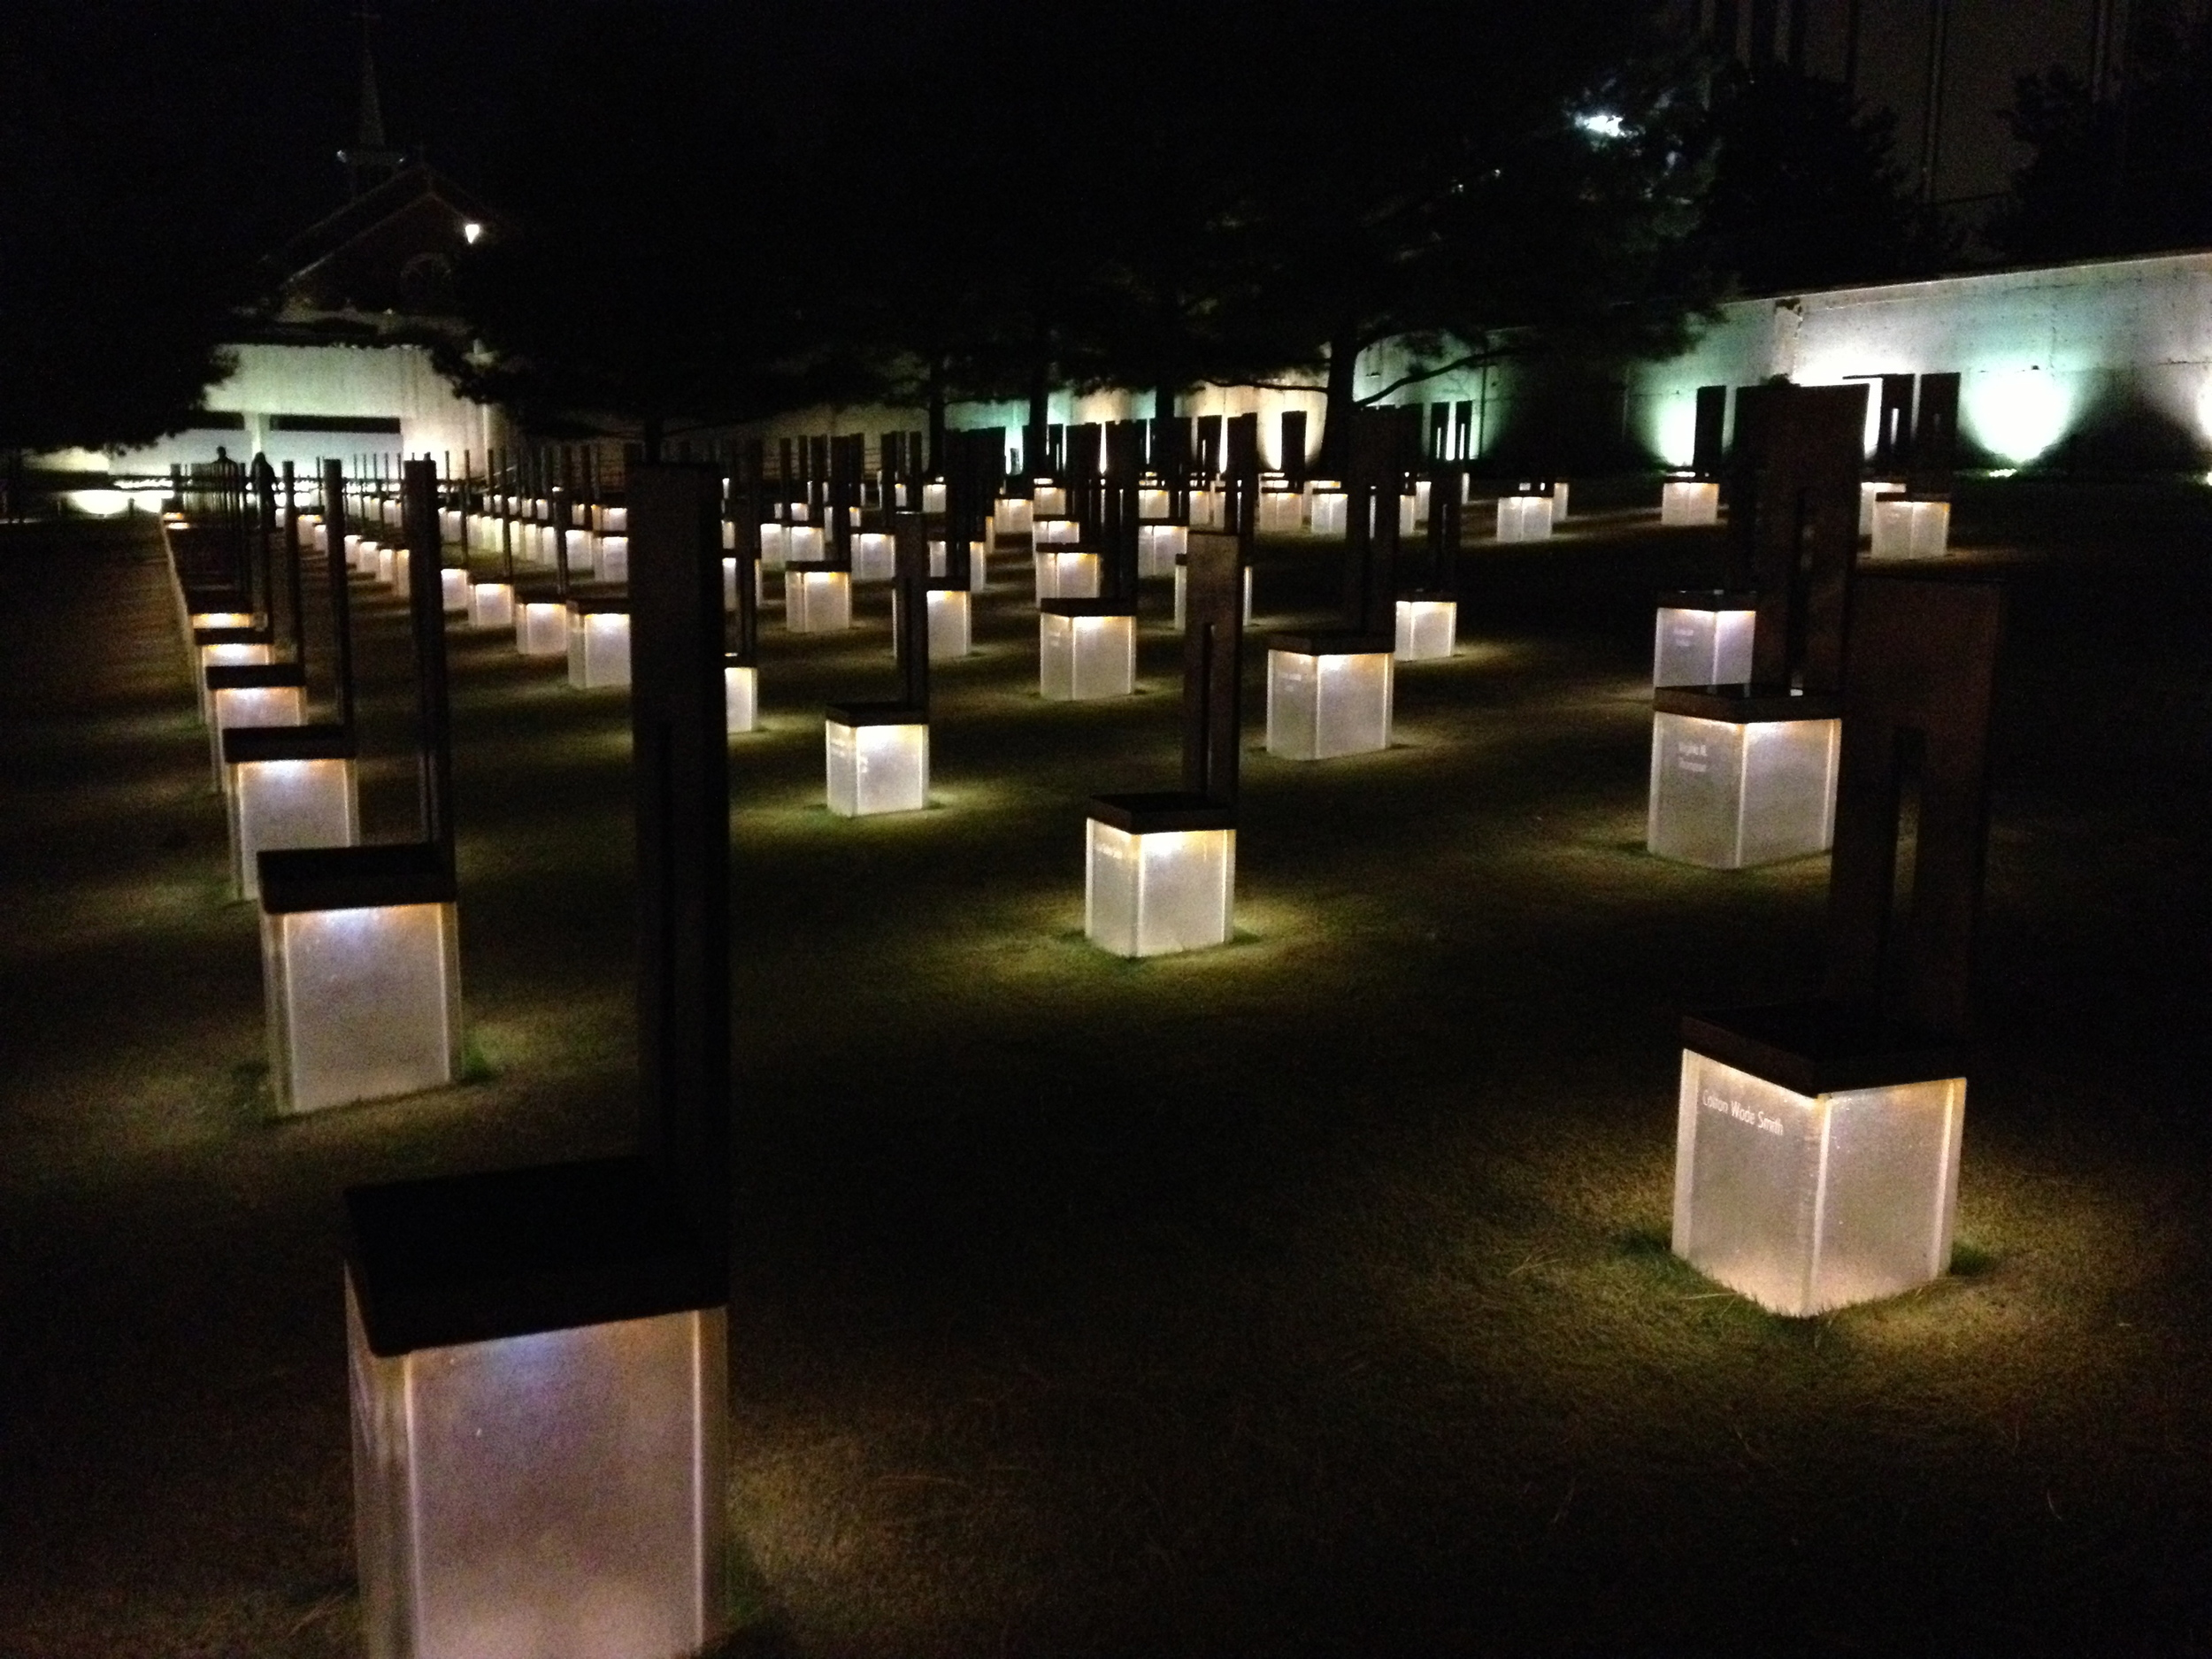 Memorial at the Oklahoma City Bombing site. Hallowed ground.